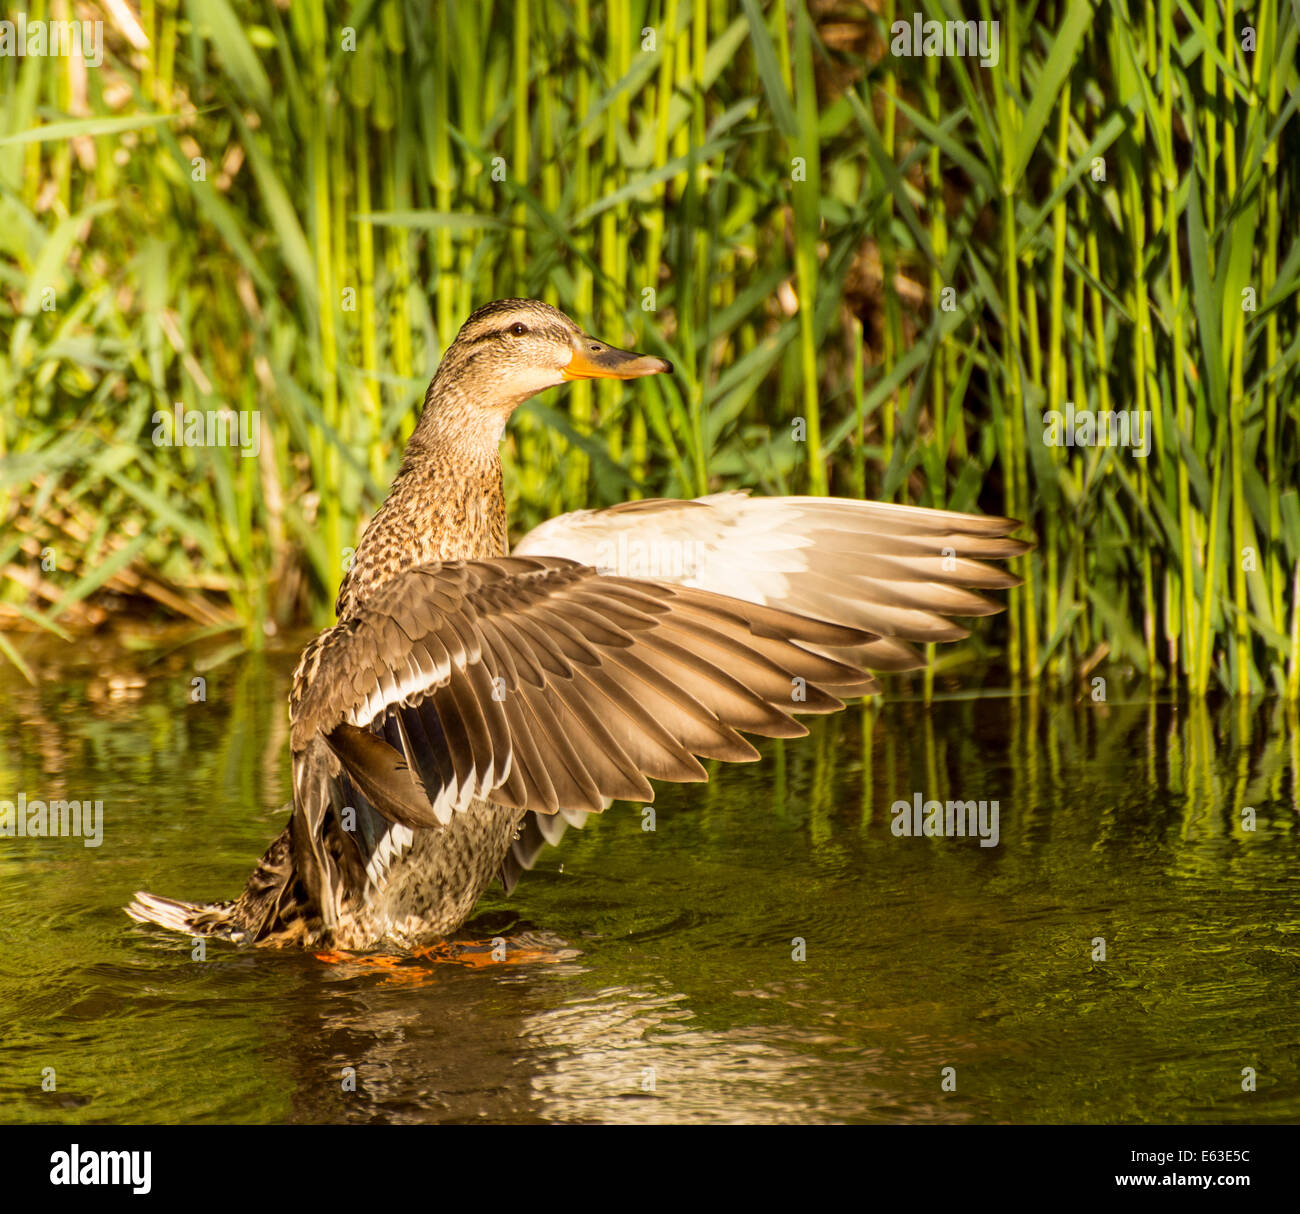 Wildlife, Water Birds, Close-up of Mallard female duck flapping her wings in Idaho River. Boise, Idaho, USA - Stock Image